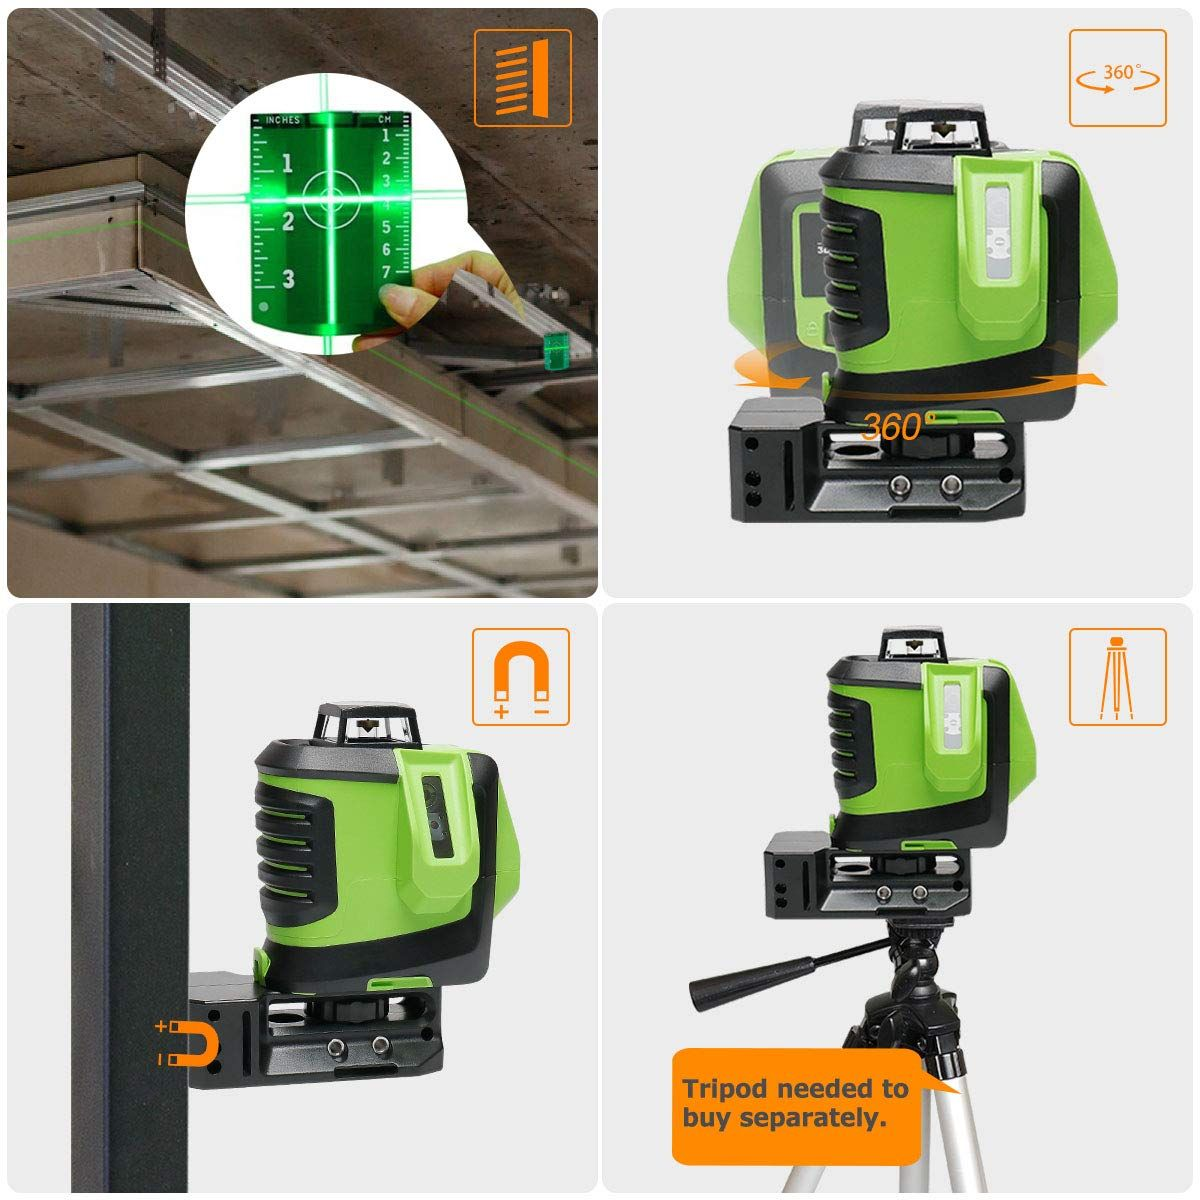 Laser Level Cross Line Laser With Plumb Dot Huepar 622cg Green Beam Laser Level 360 Degree Horizontal And Two Vertical Lines Plu Laser Levels Plumbing Laser